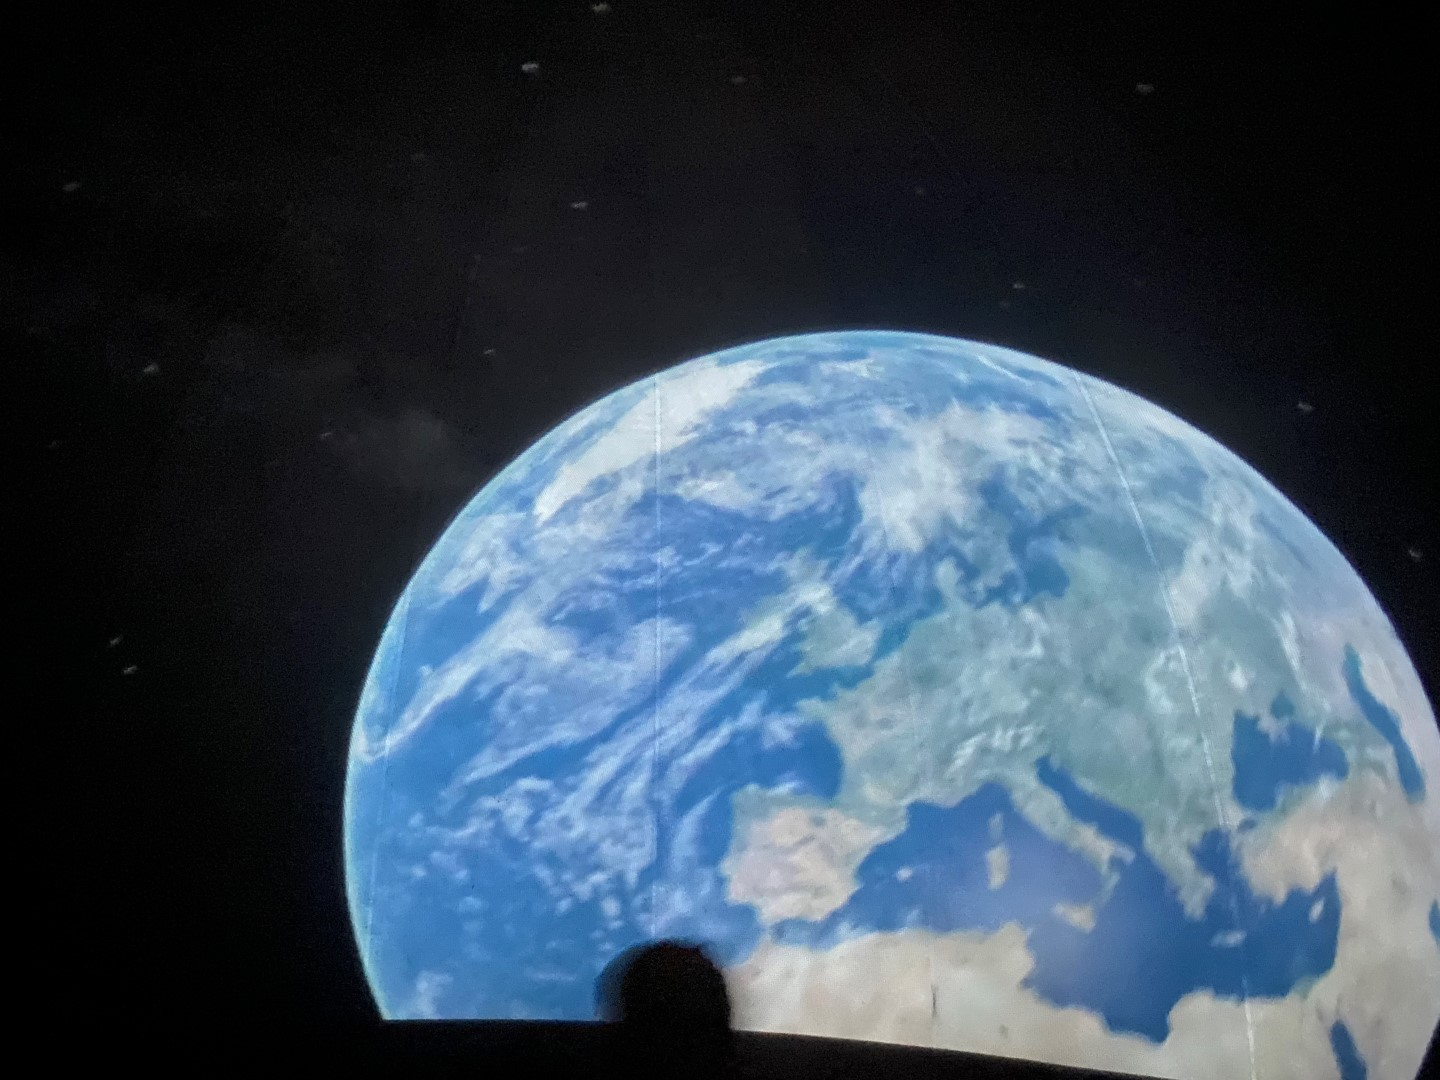 View of Earth from space projected inside the planetarium dome.